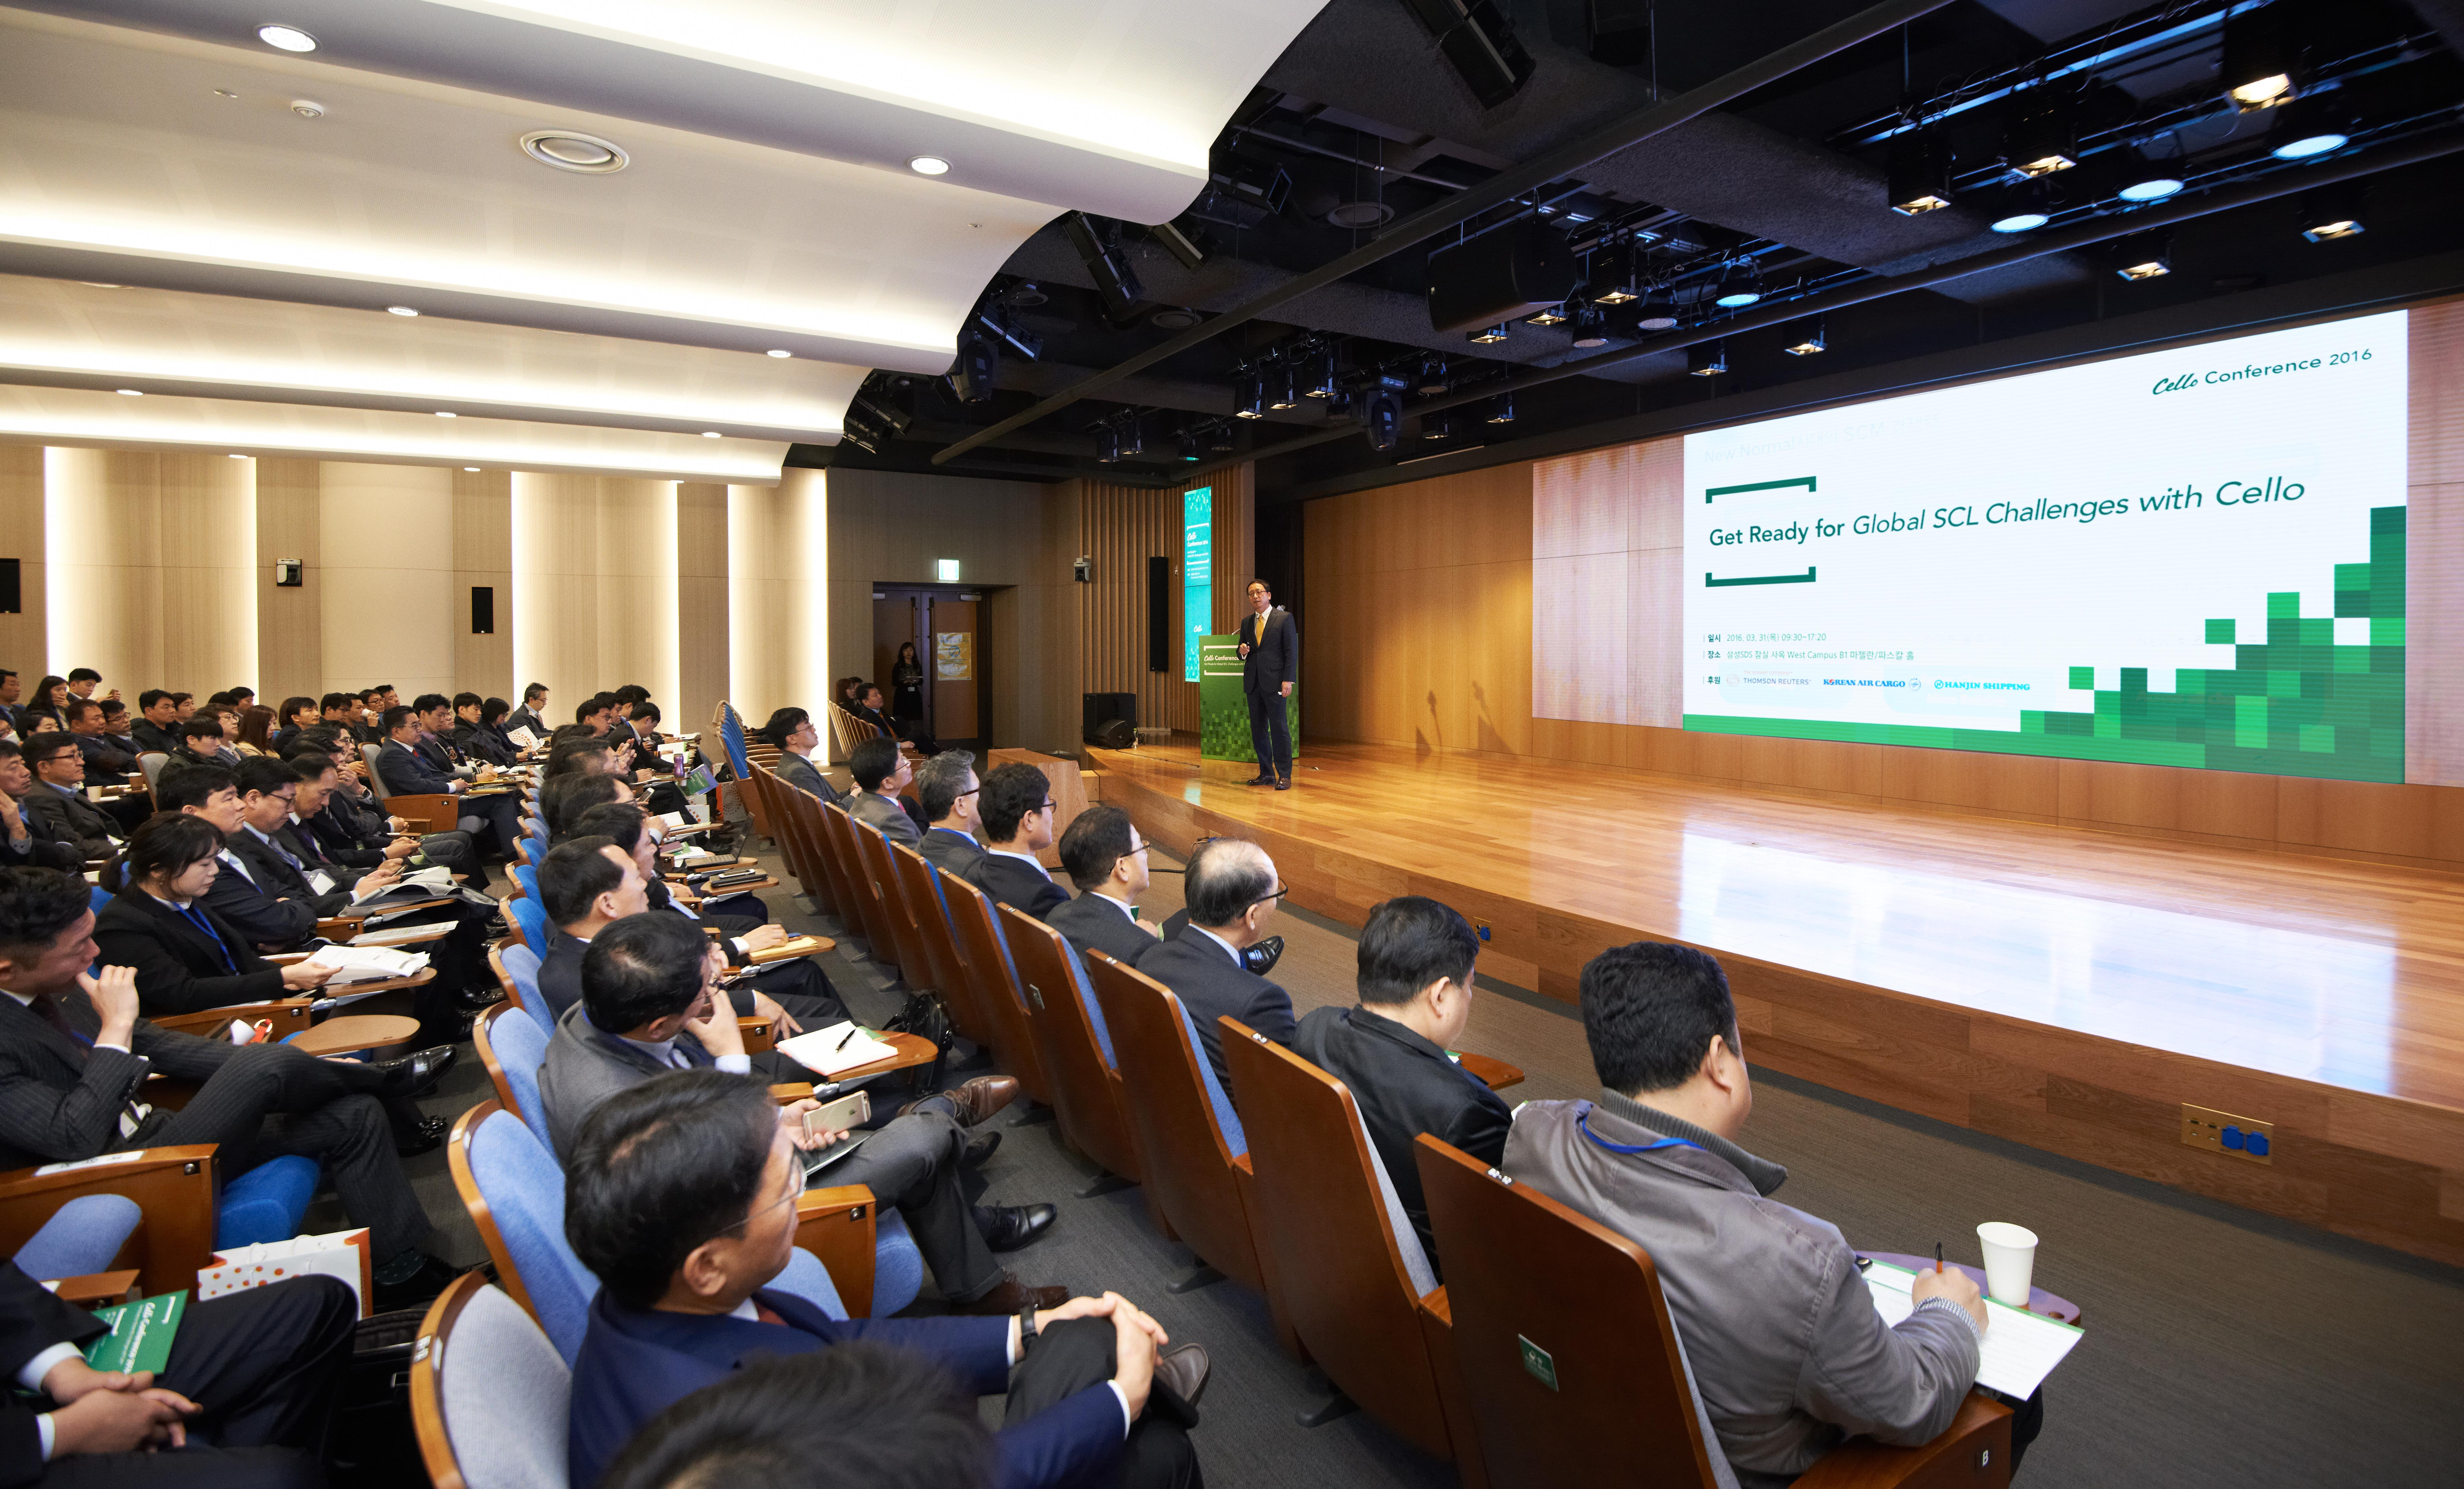 Samsung SDS held Cello Conference 2016 on March 31 at Samsung SDS Campus.